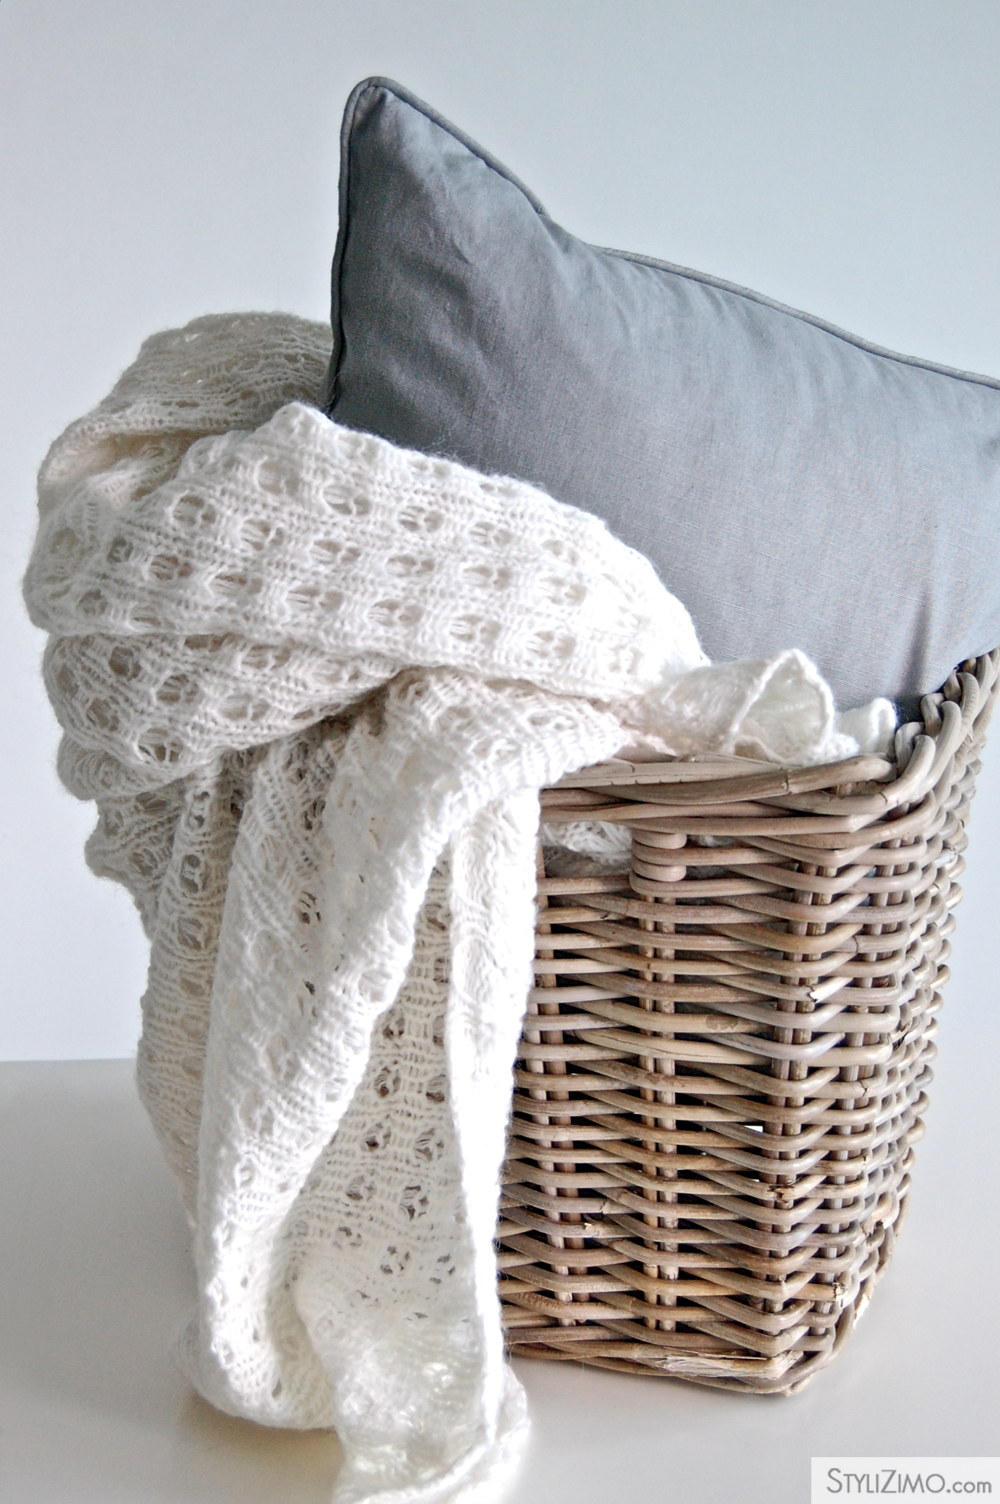 for the love of baskets and soft